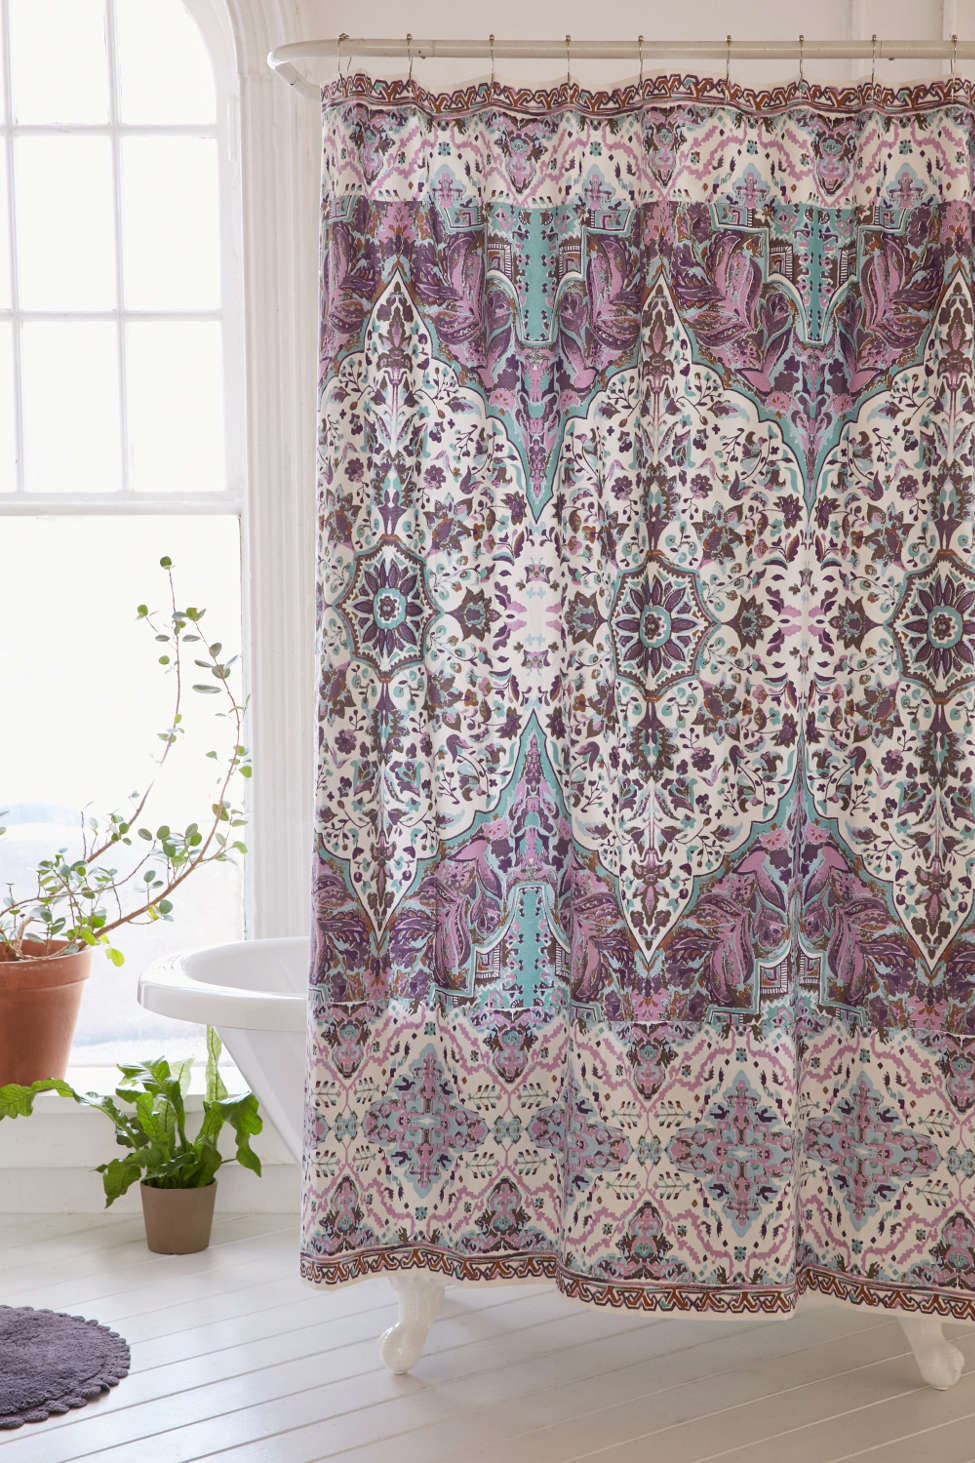 Slide View: 1: Magical Thinking Florin Shower Curtain